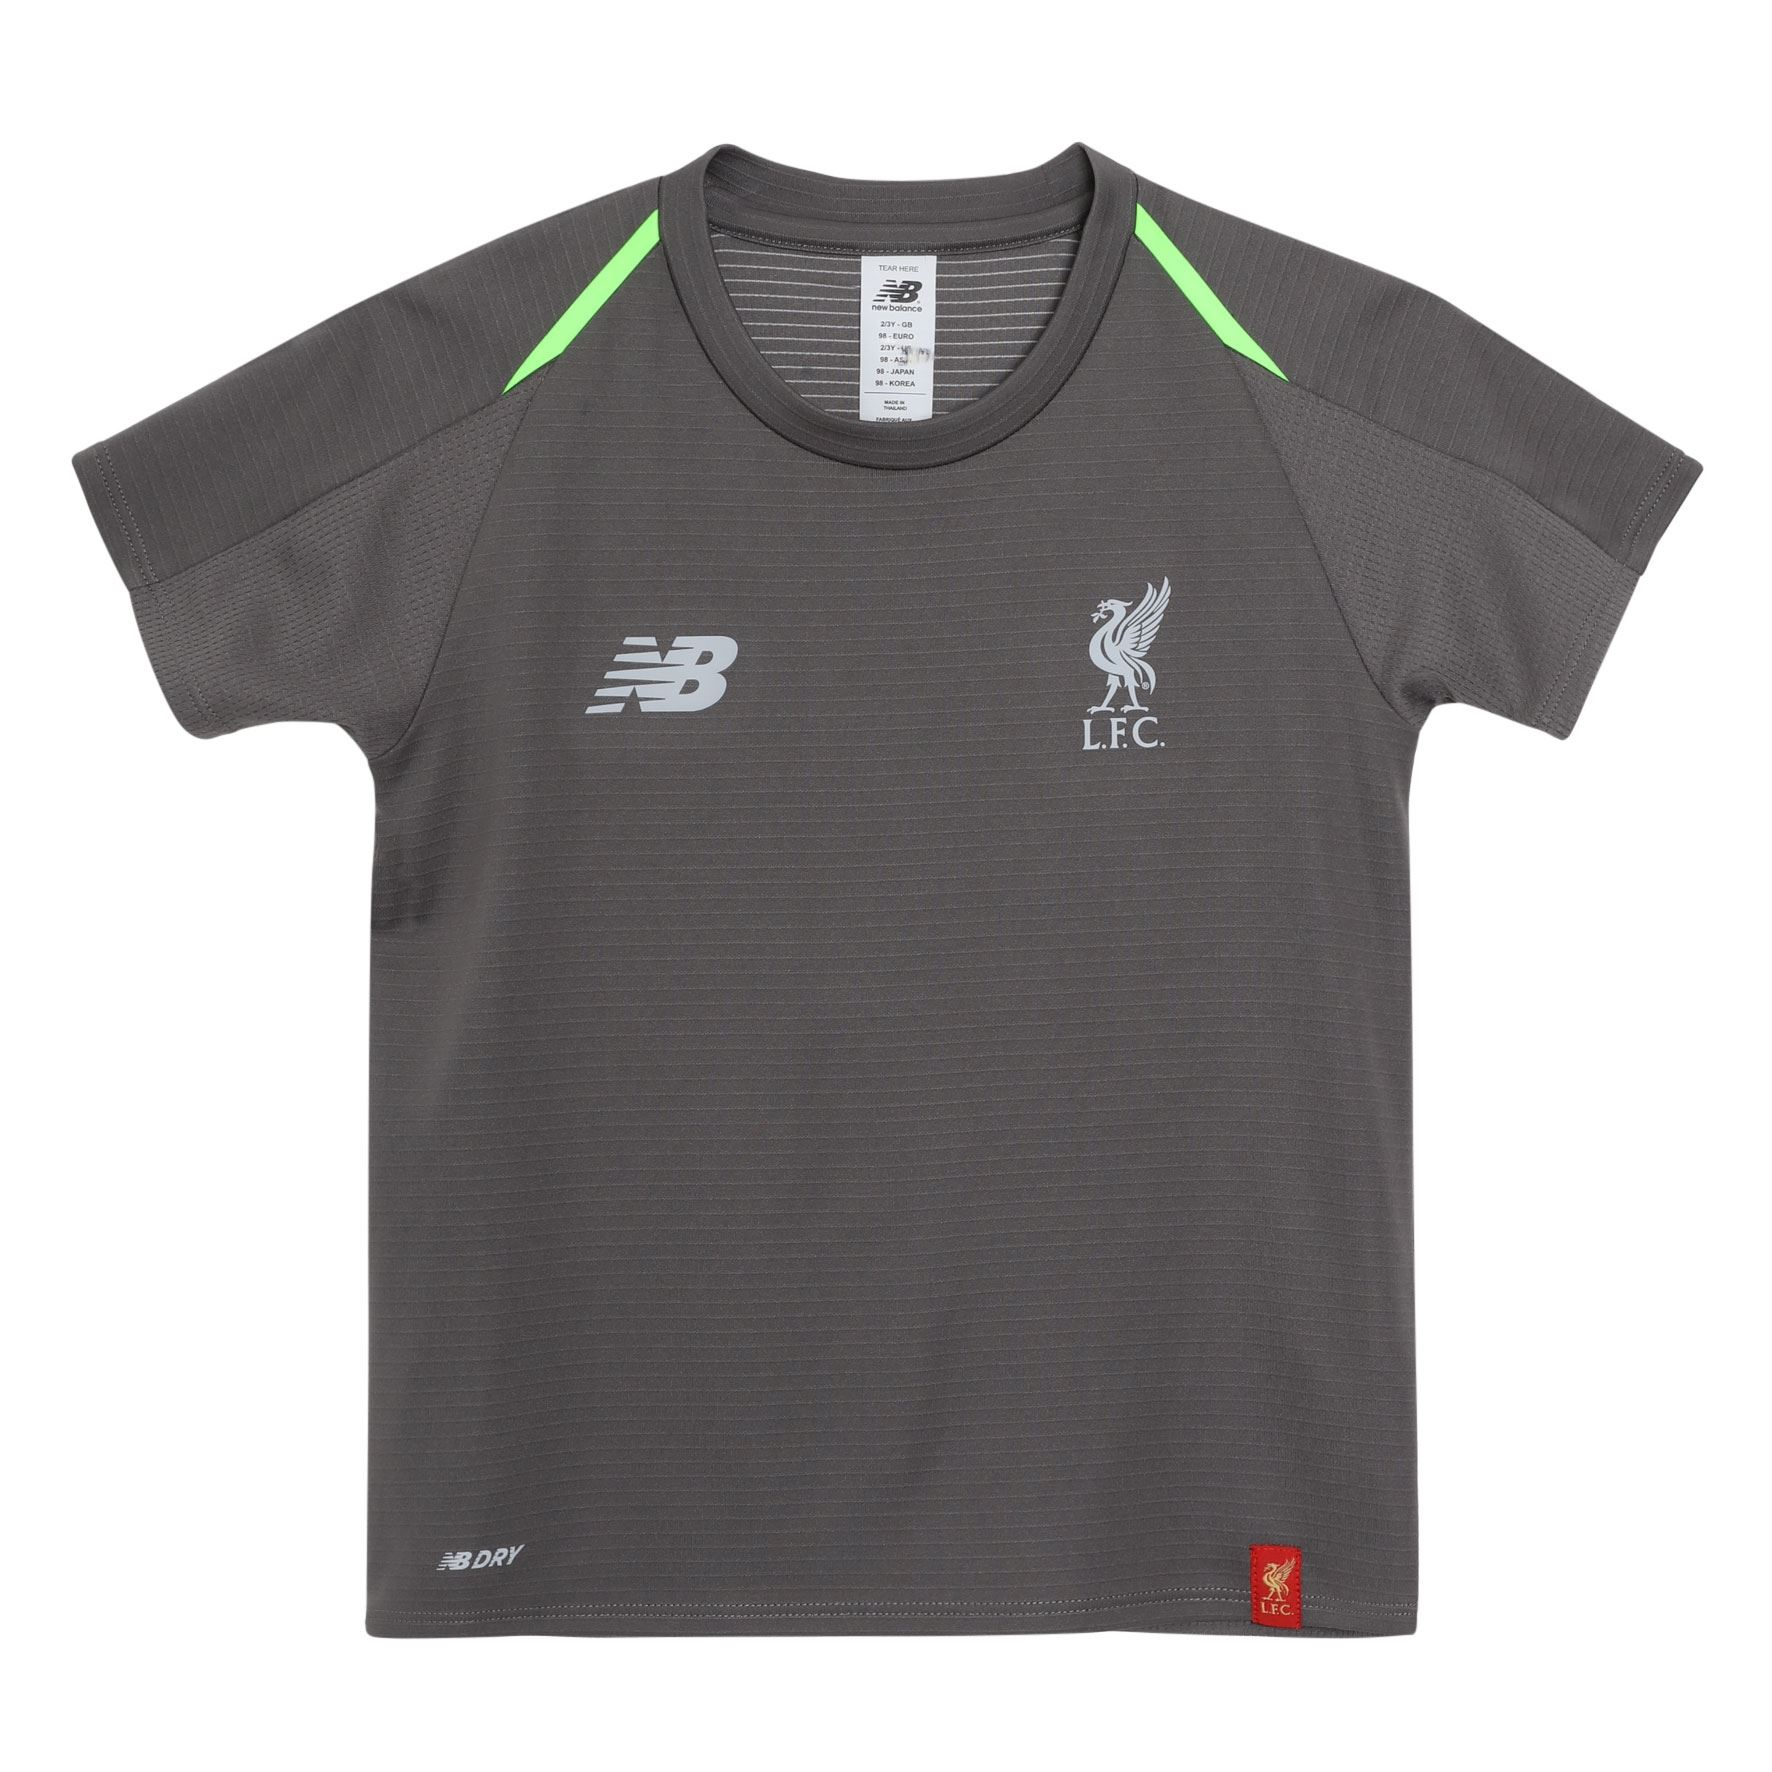 5d34c8240 Details about FC Liverpool Grey Baby Infant Training Football Shirt 18/19  LFC Official Store